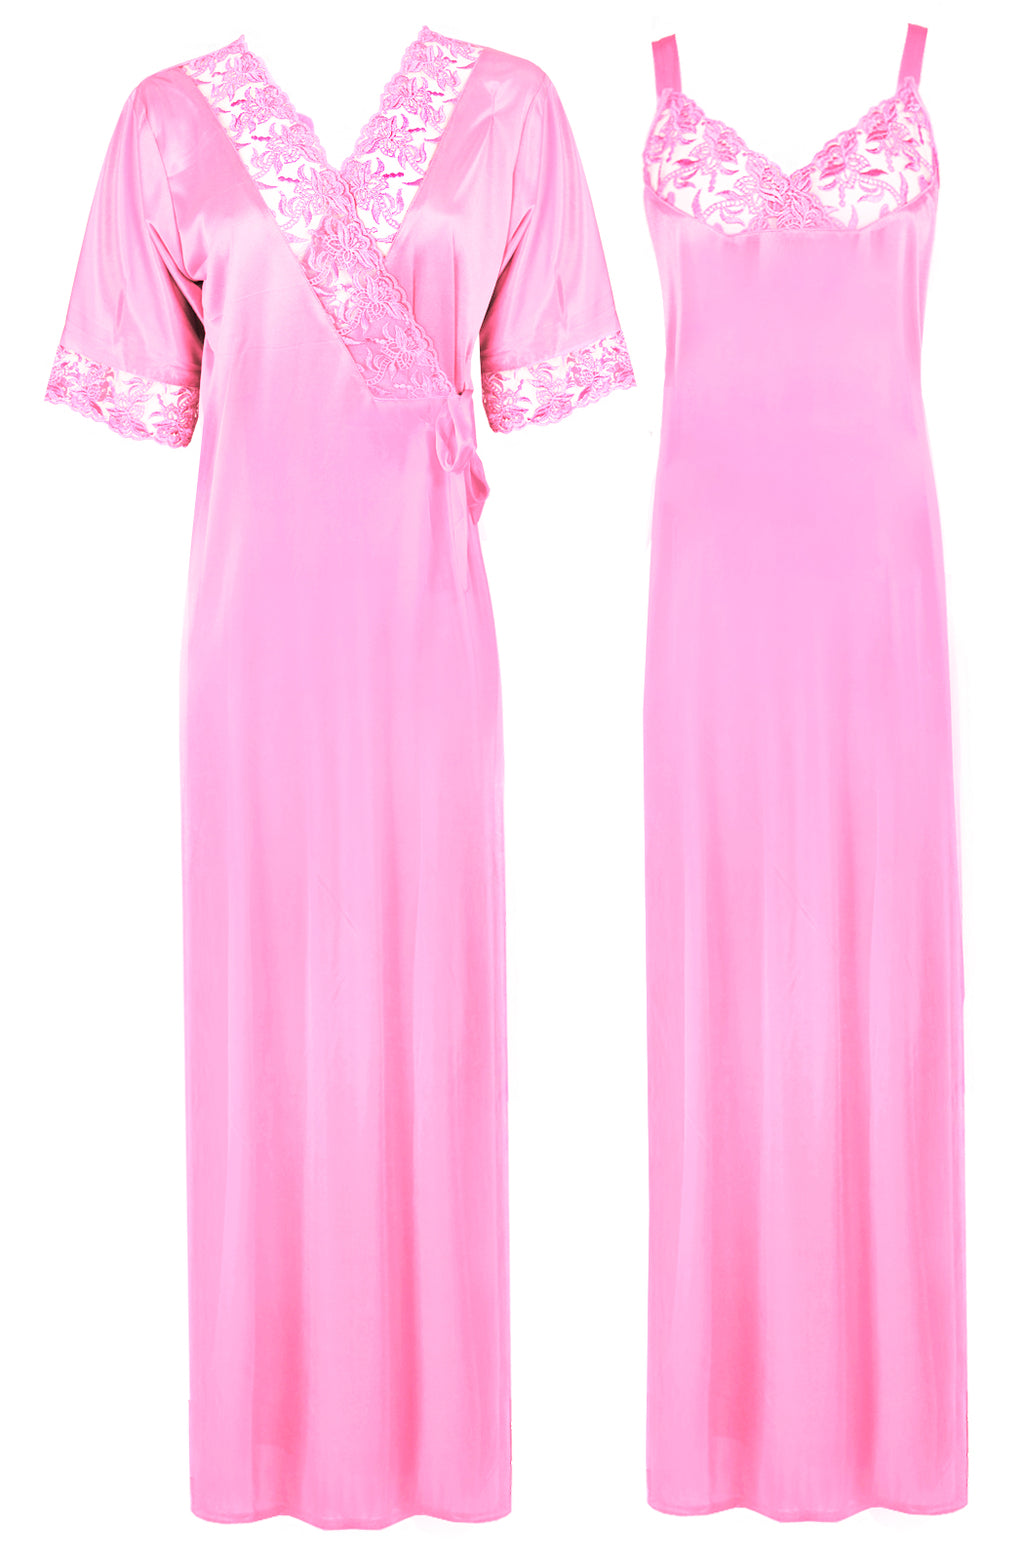 Women Satin Nighty with Robe Nightdress [colour]- Hautie UK, #Nightfashion | #Underfashion